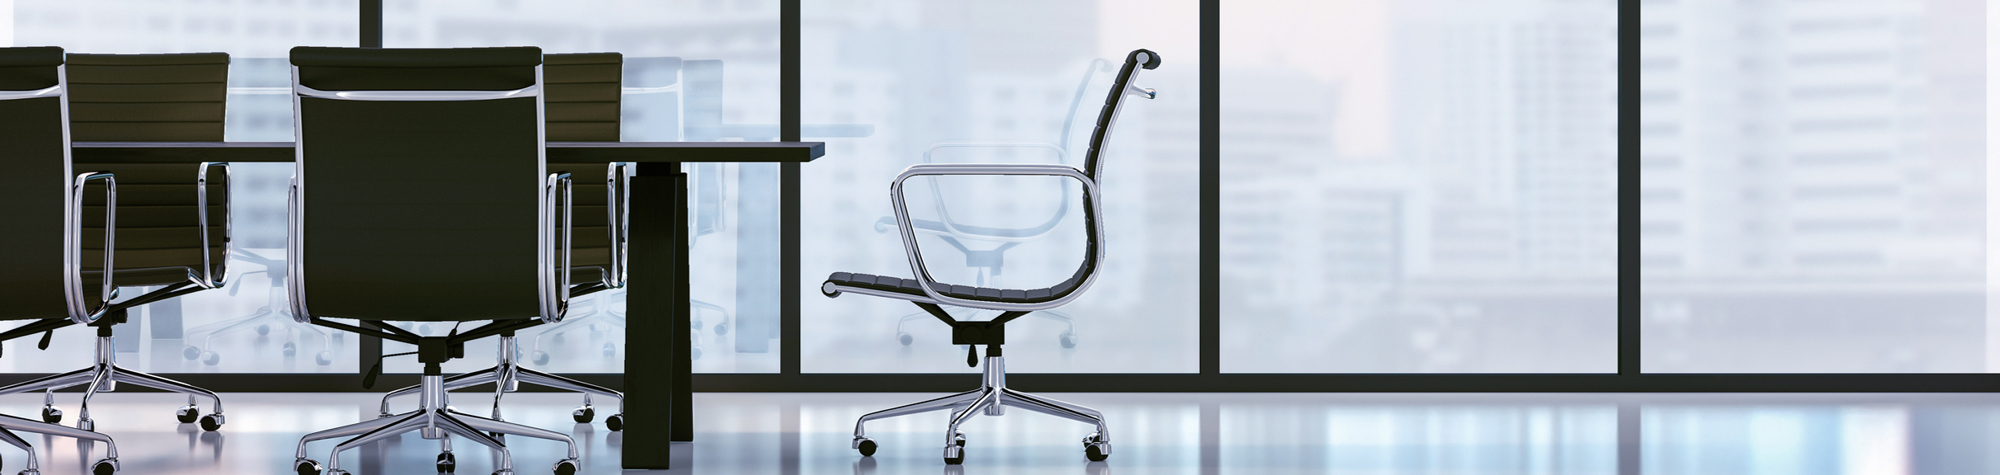 Board of Directors – Katherine Ho Header Image. Featuring an office chair at the head of a boardroom table, surrounded by 4 office chairs. Also featuring glass windows overlooking a faint background of office buildings. Search Consultancy.